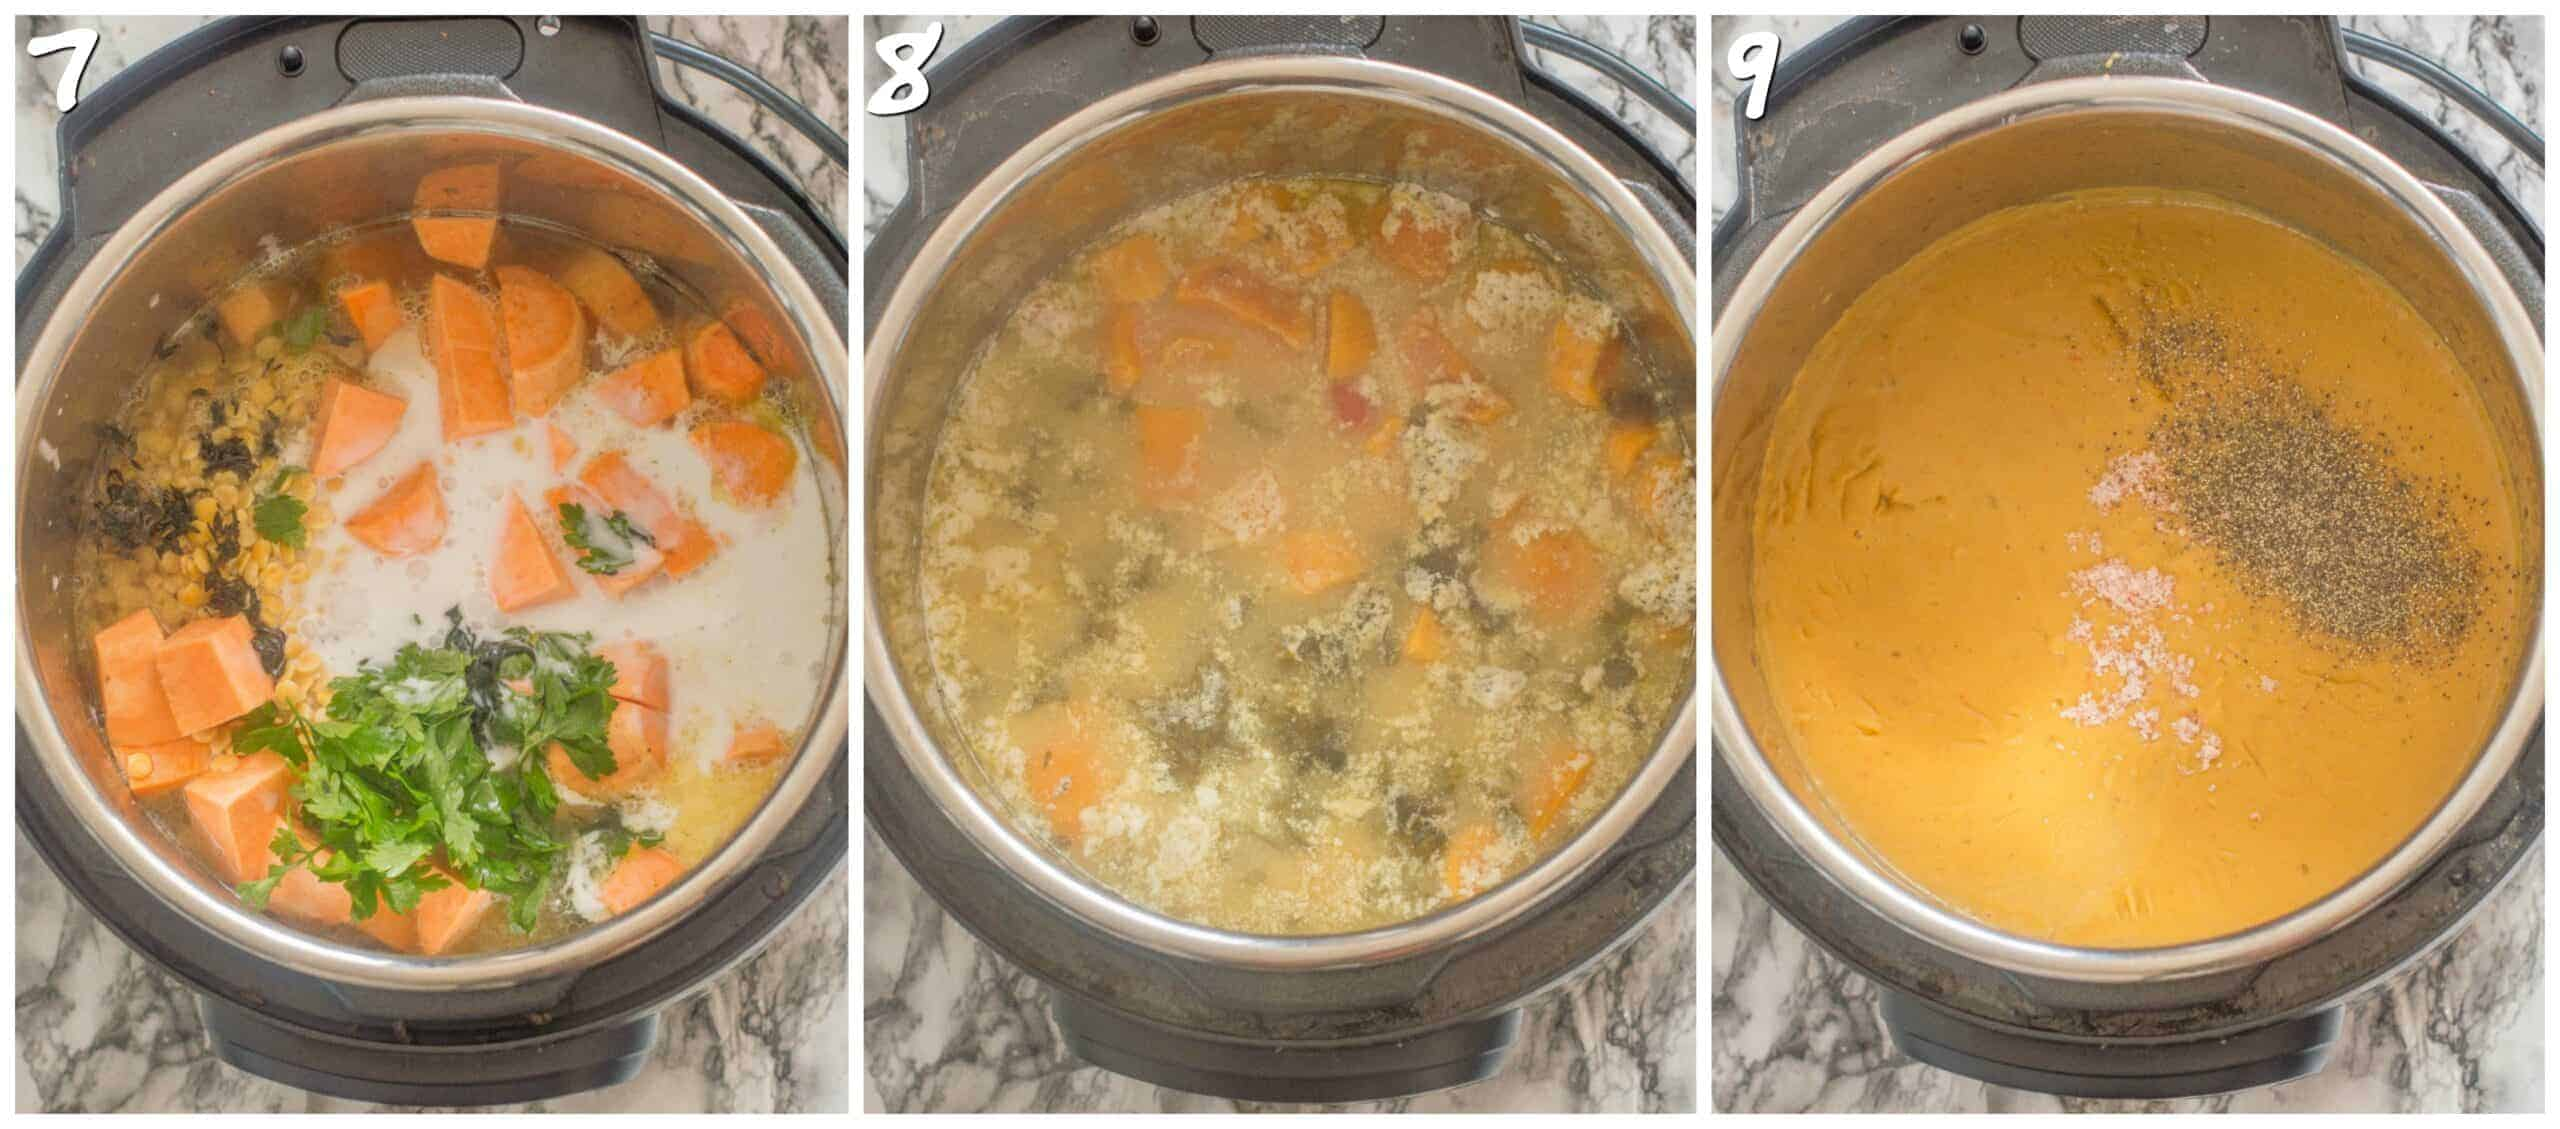 steps 7-9 pureeing the soup